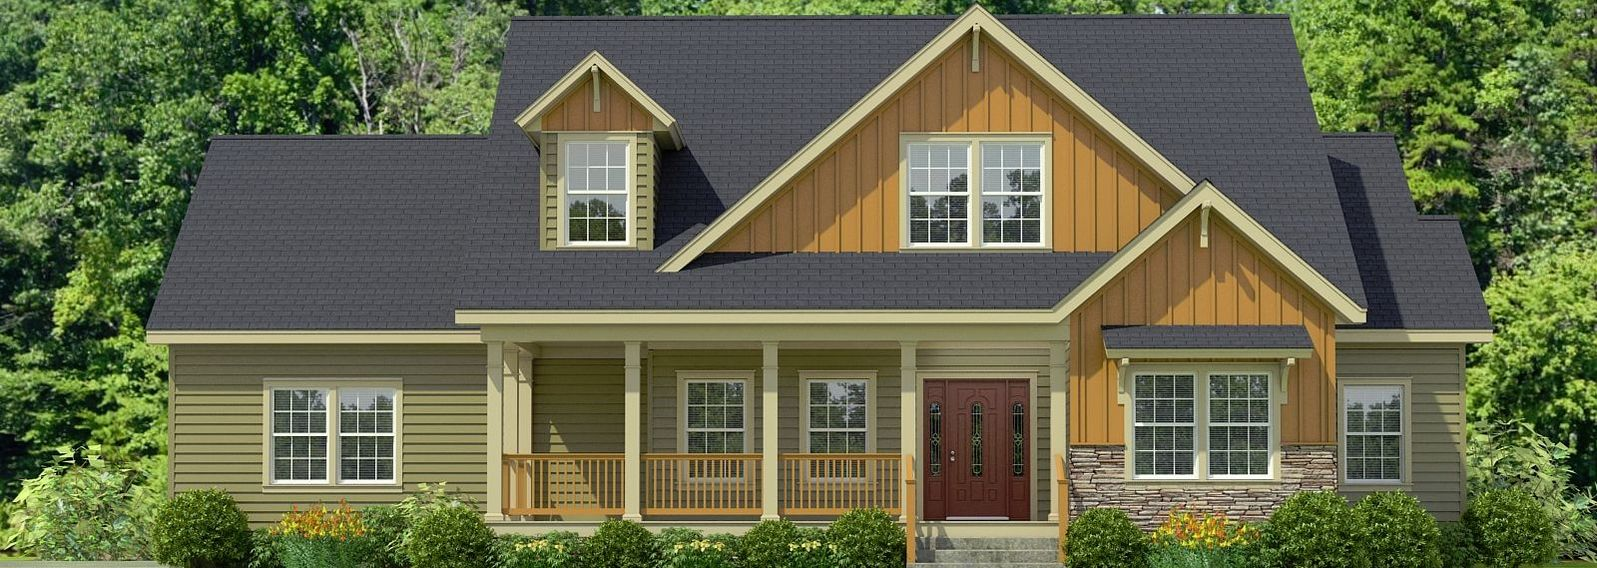 Modular Homes Greensboro Nc